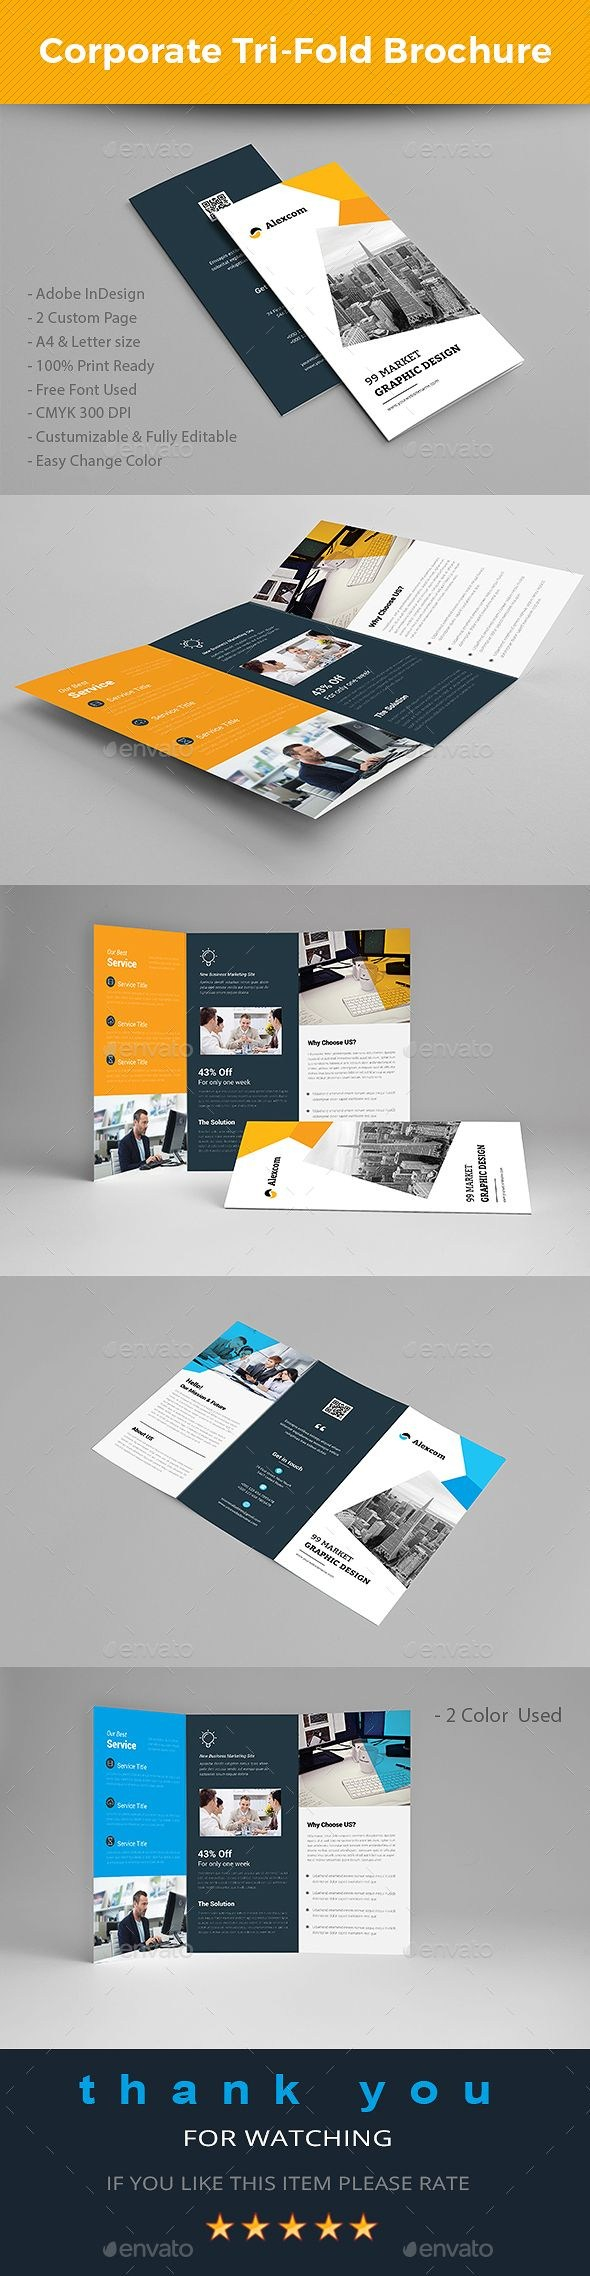 Letter Folding Template - Fresh Free Pamphlet Template Your Template Collection